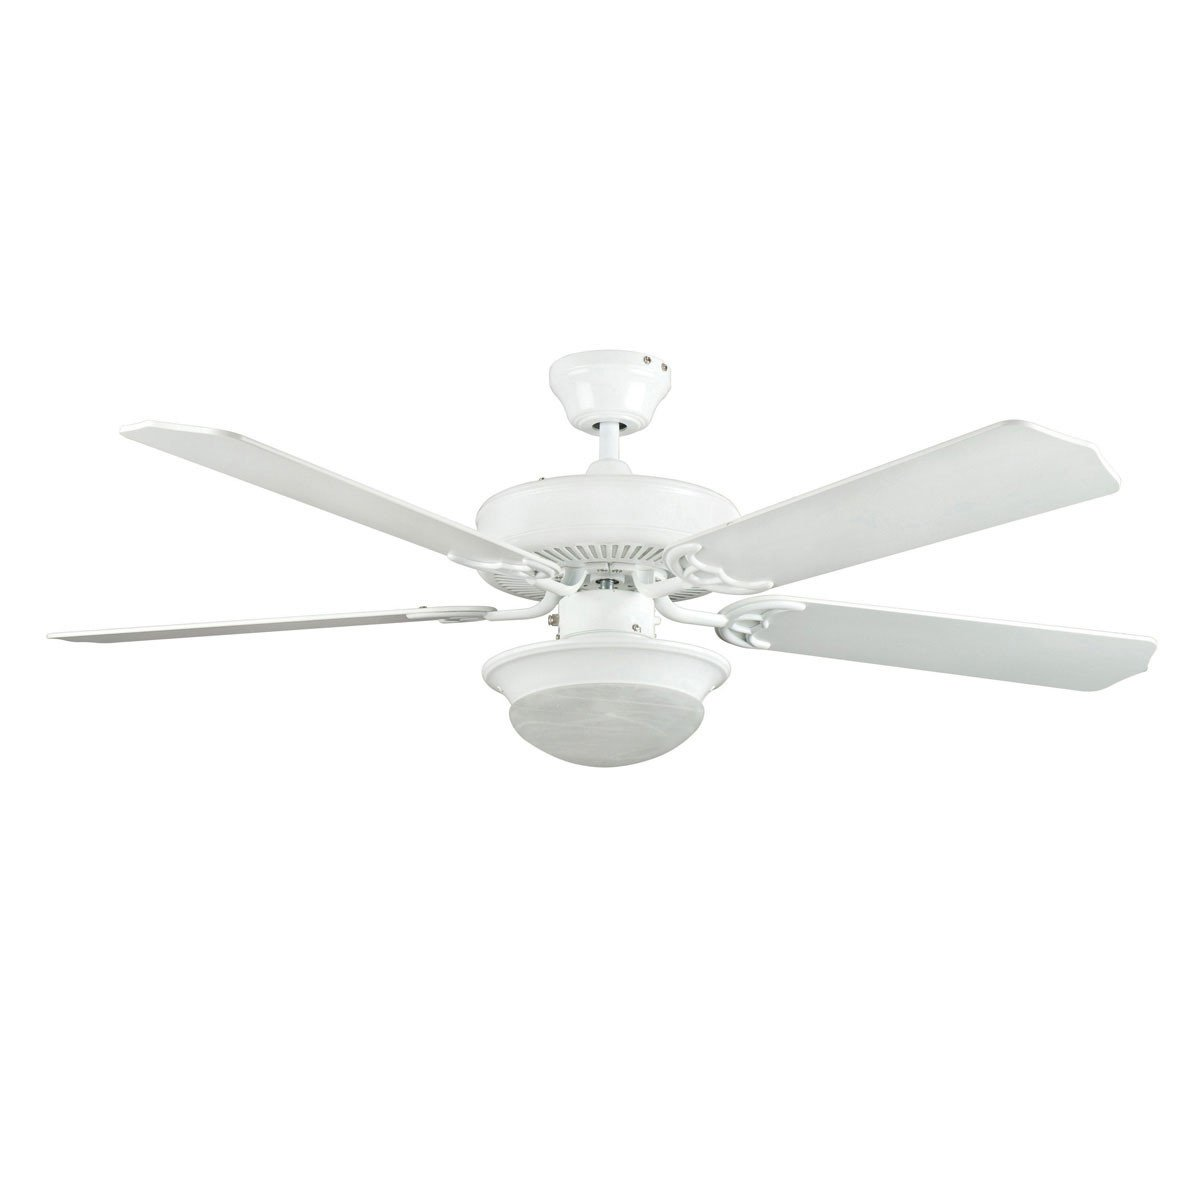 concord fans  heritage fusion white modern ceiling fan with  - concord fans  heritage fusion white modern ceiling fan with round lightkit